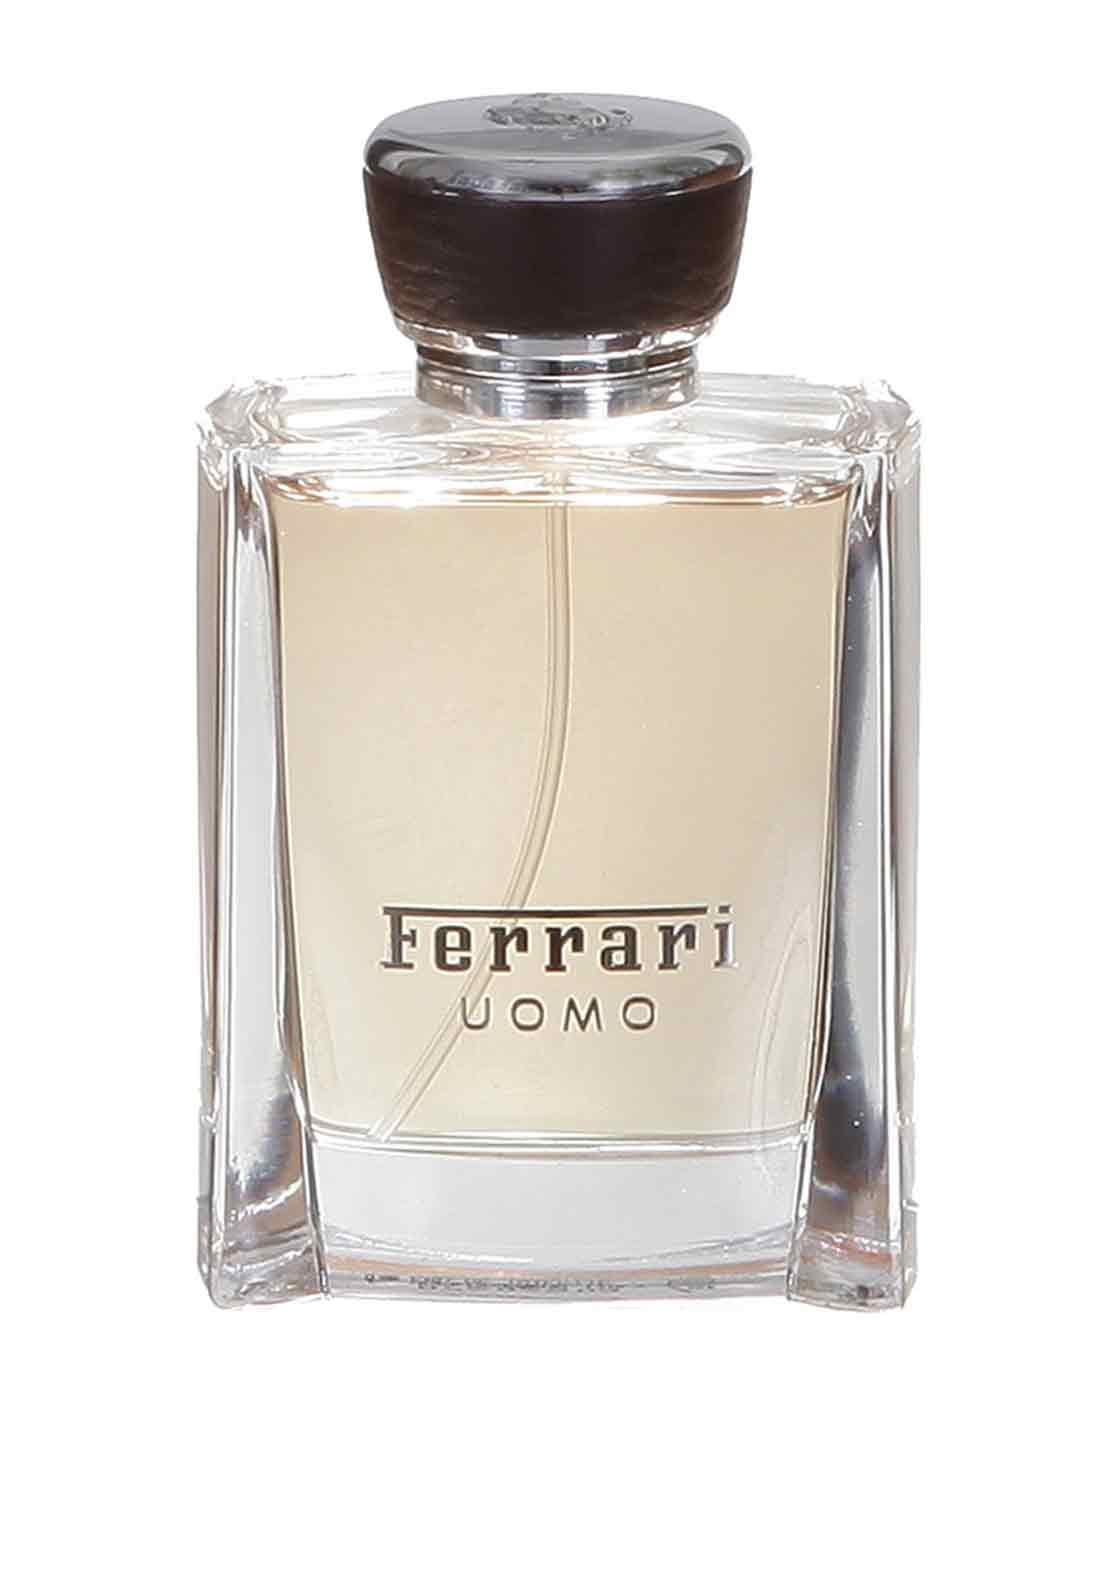 Ferrari Uomo Eau de Toilette Aftershave, 30ml